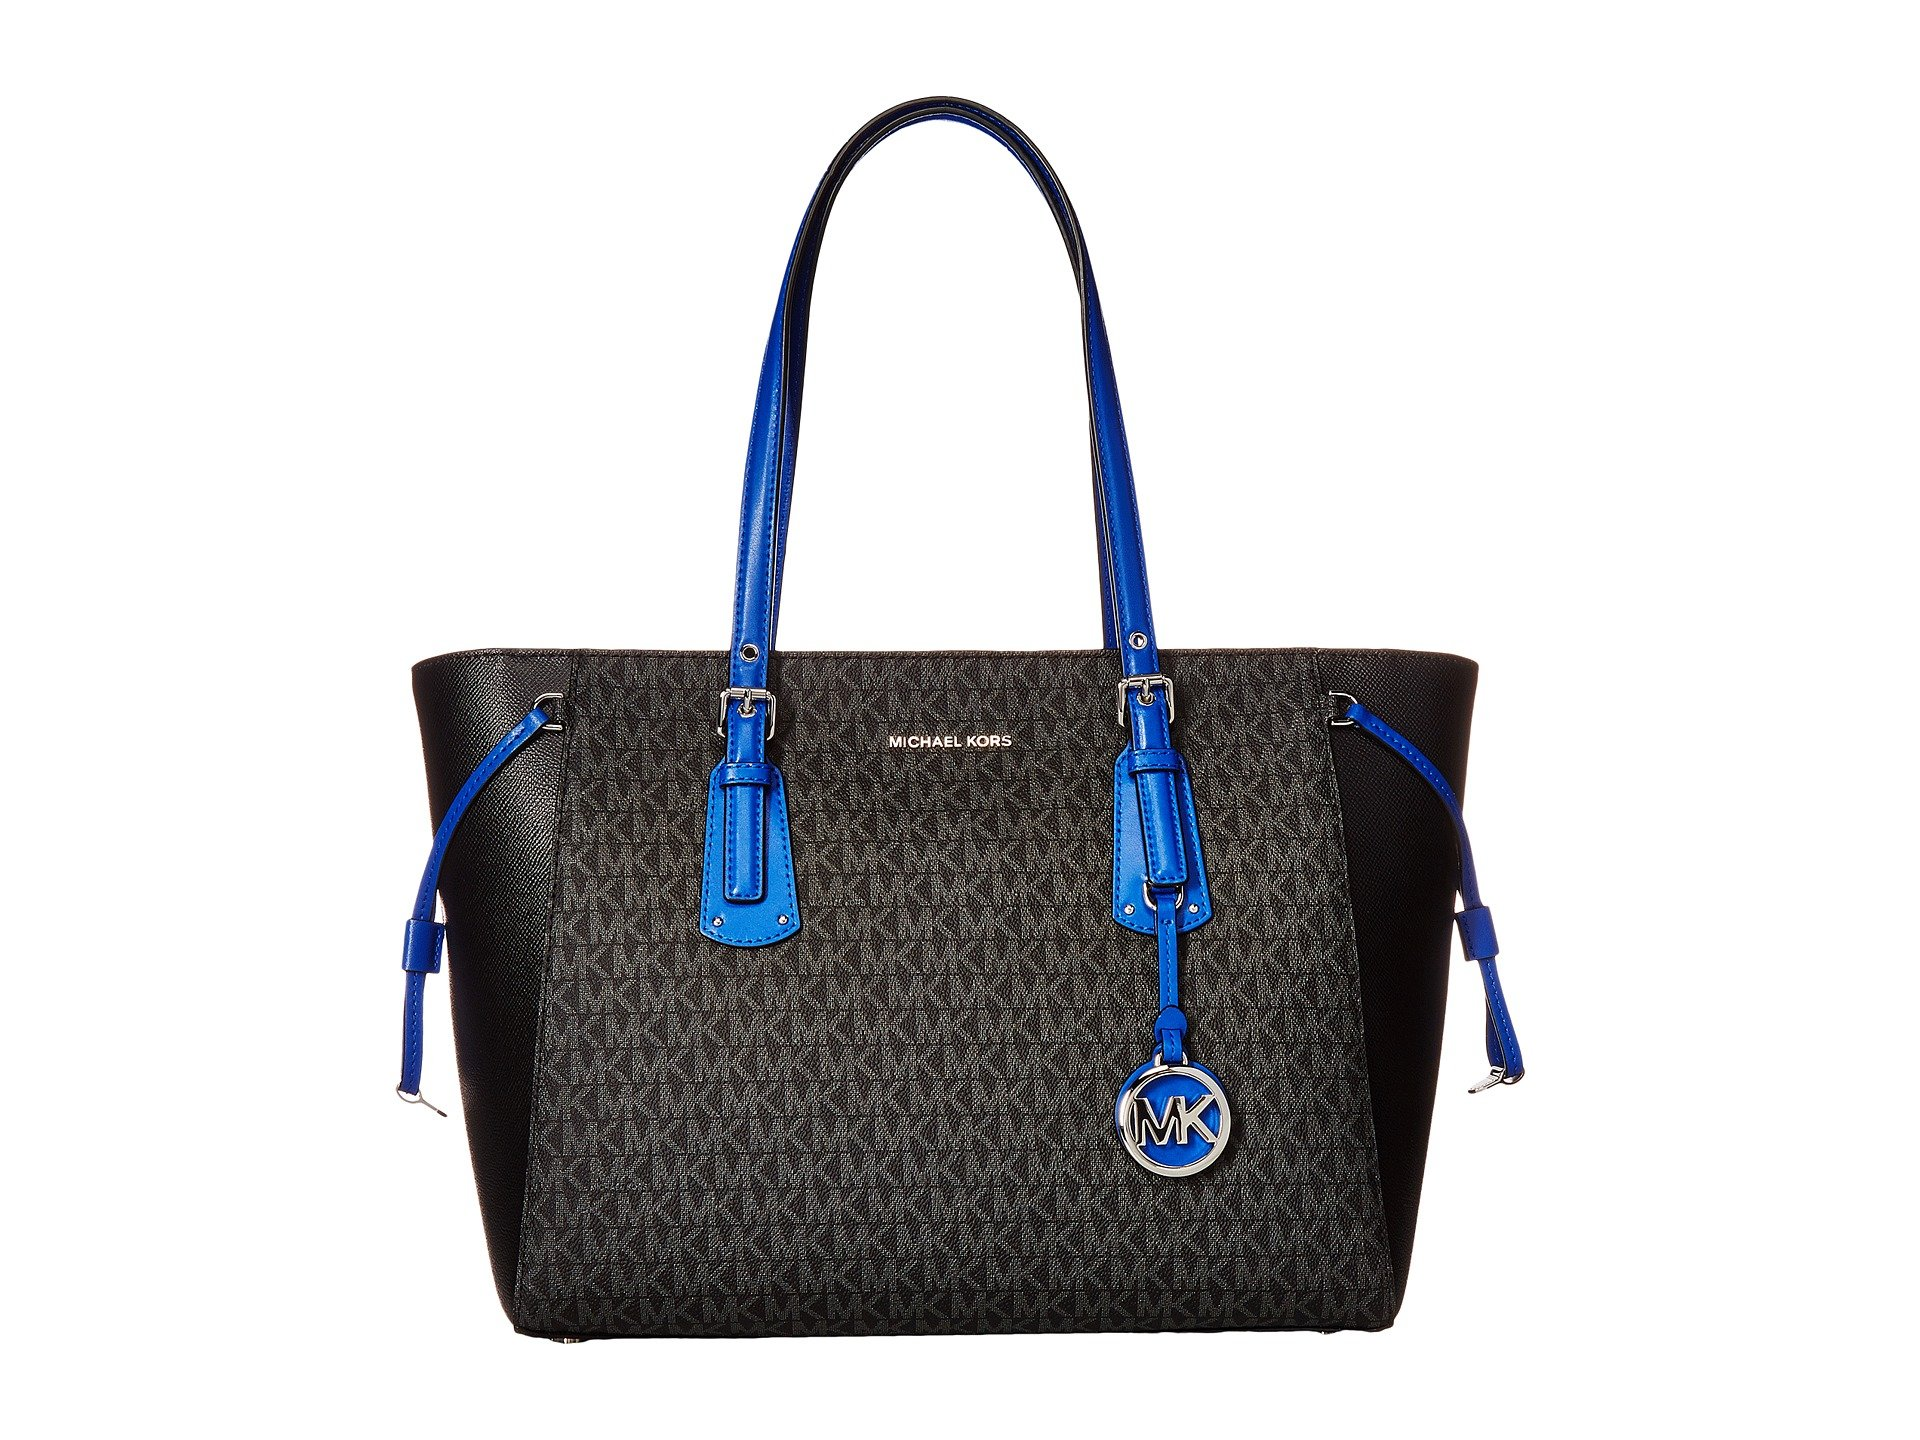 MICHAEL MICHAEL KORS Large Voyager Two Tone Tote, Black/Electric Blue by Michael Kors